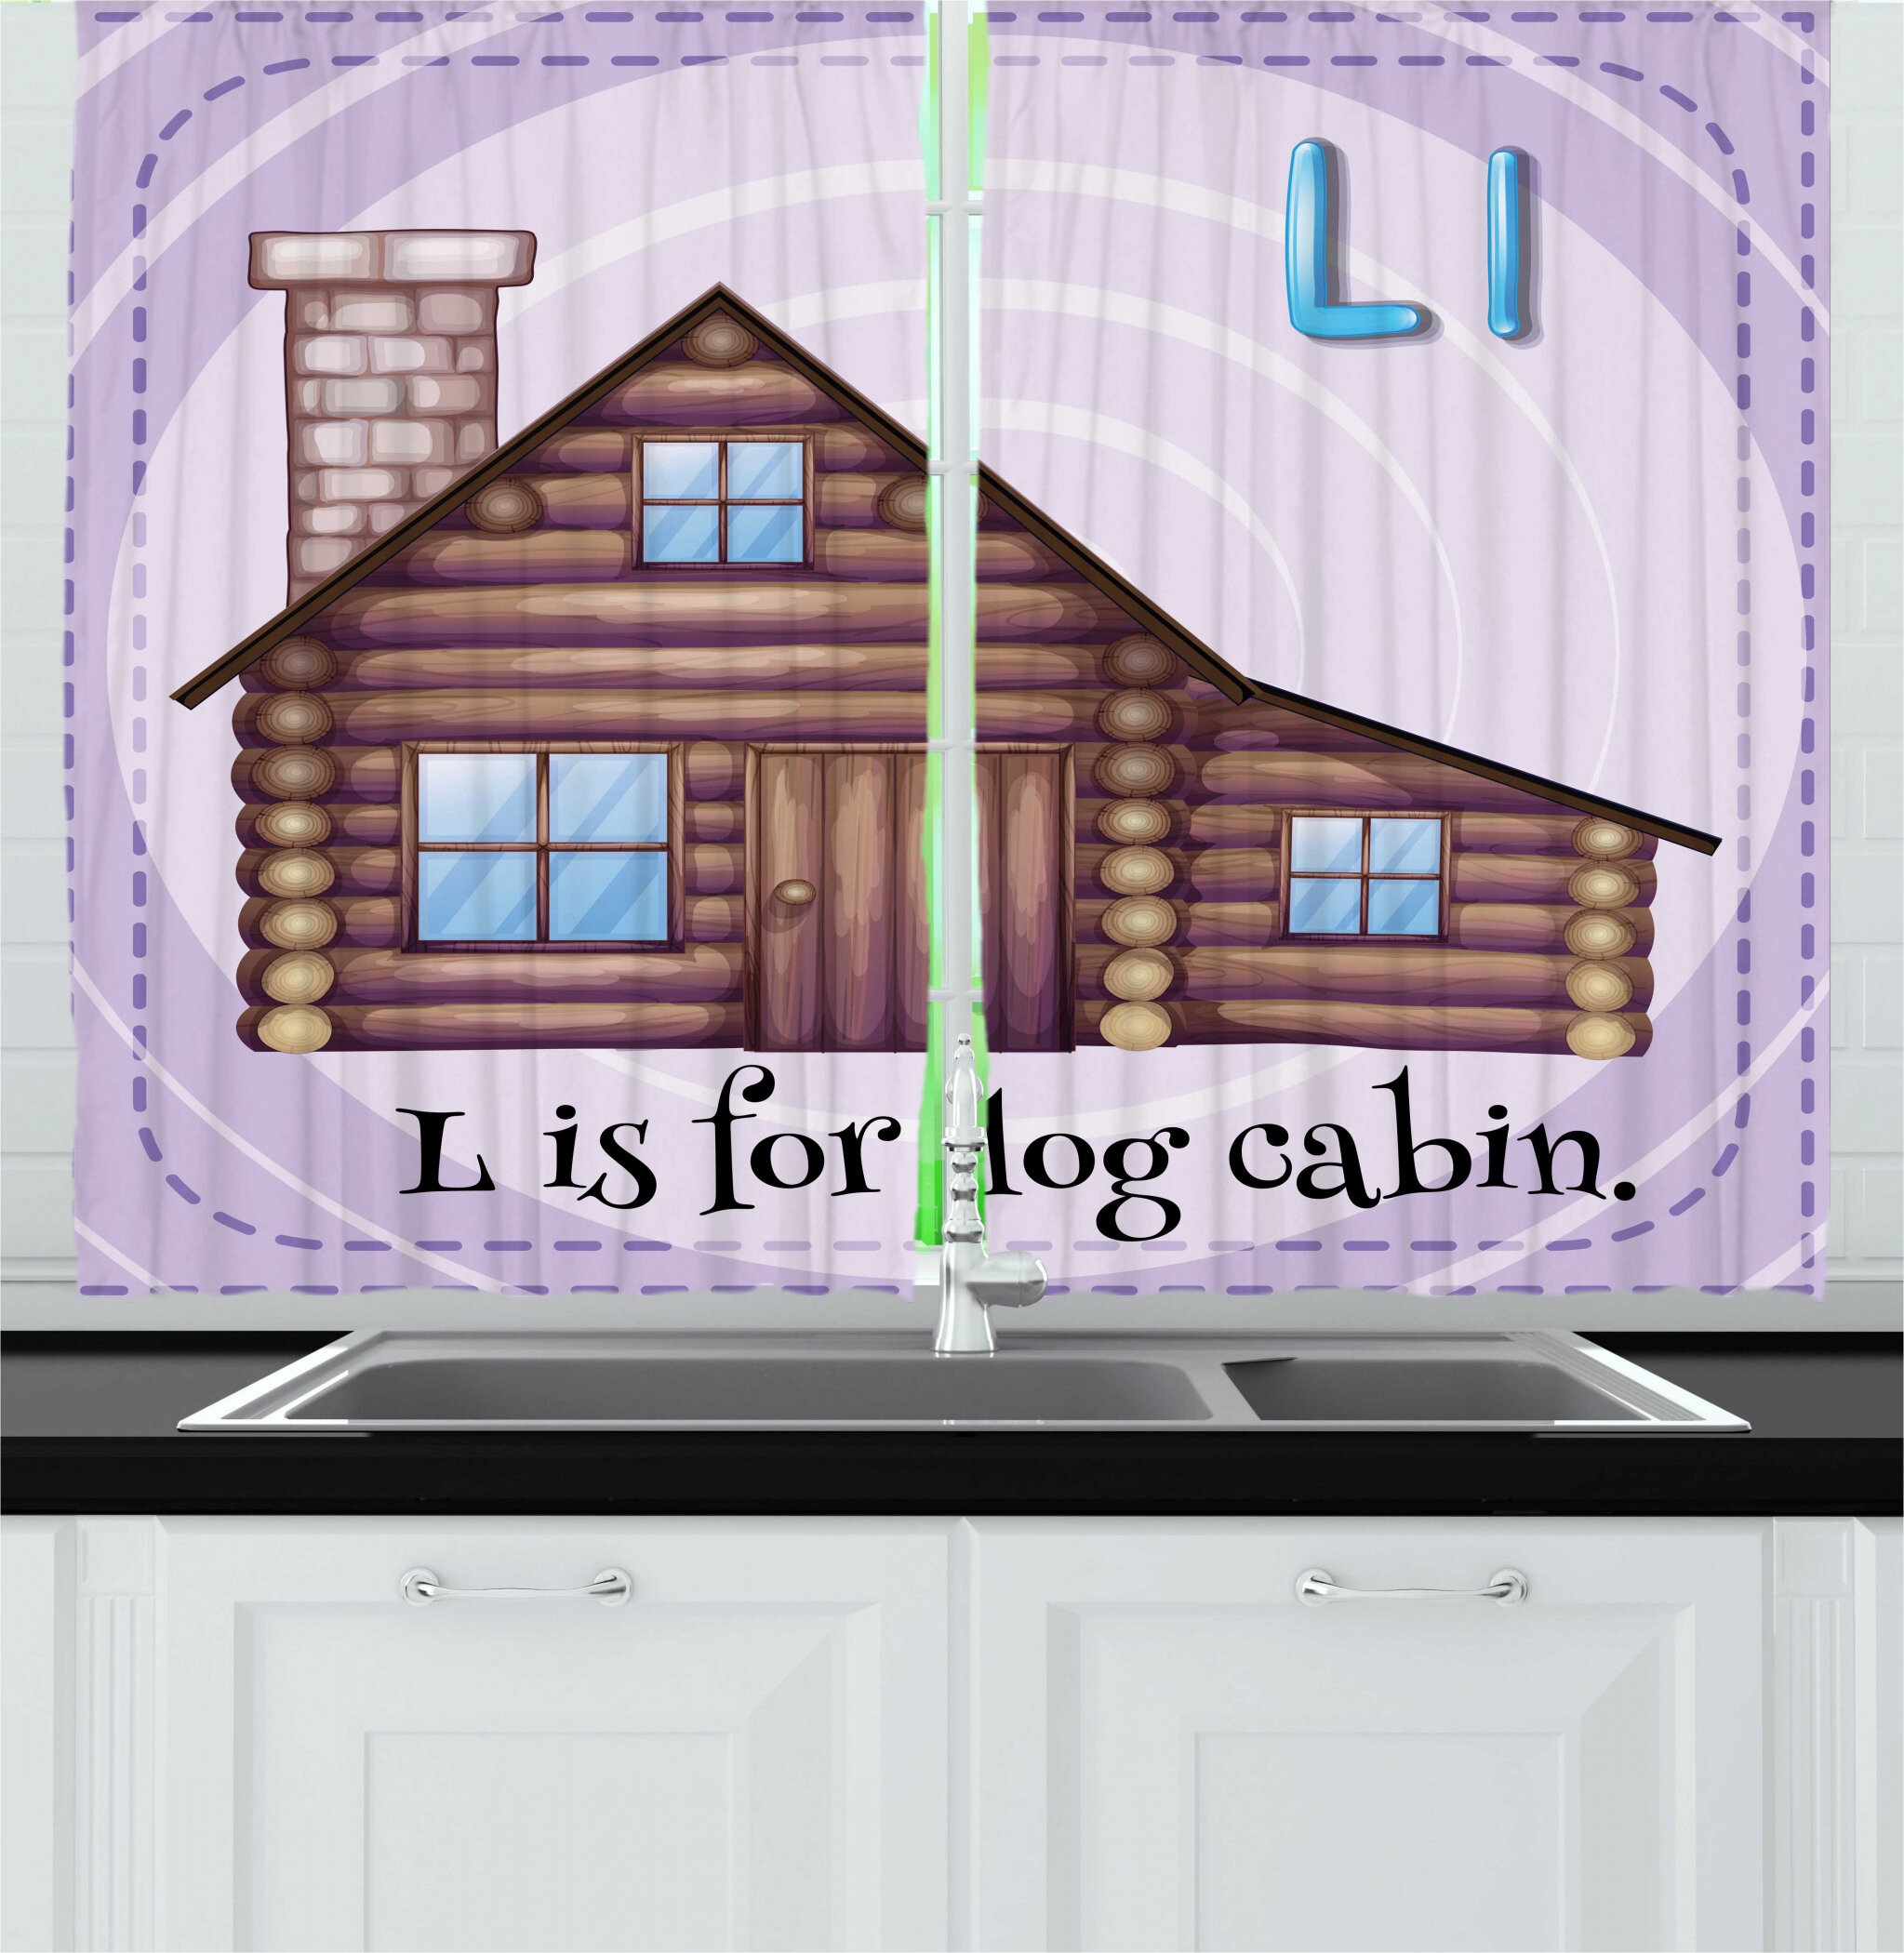 2 Piece Log Cabin Alphabet Flashcard for L Letter with Image of Log Cabin  Kitchen Curtain Set